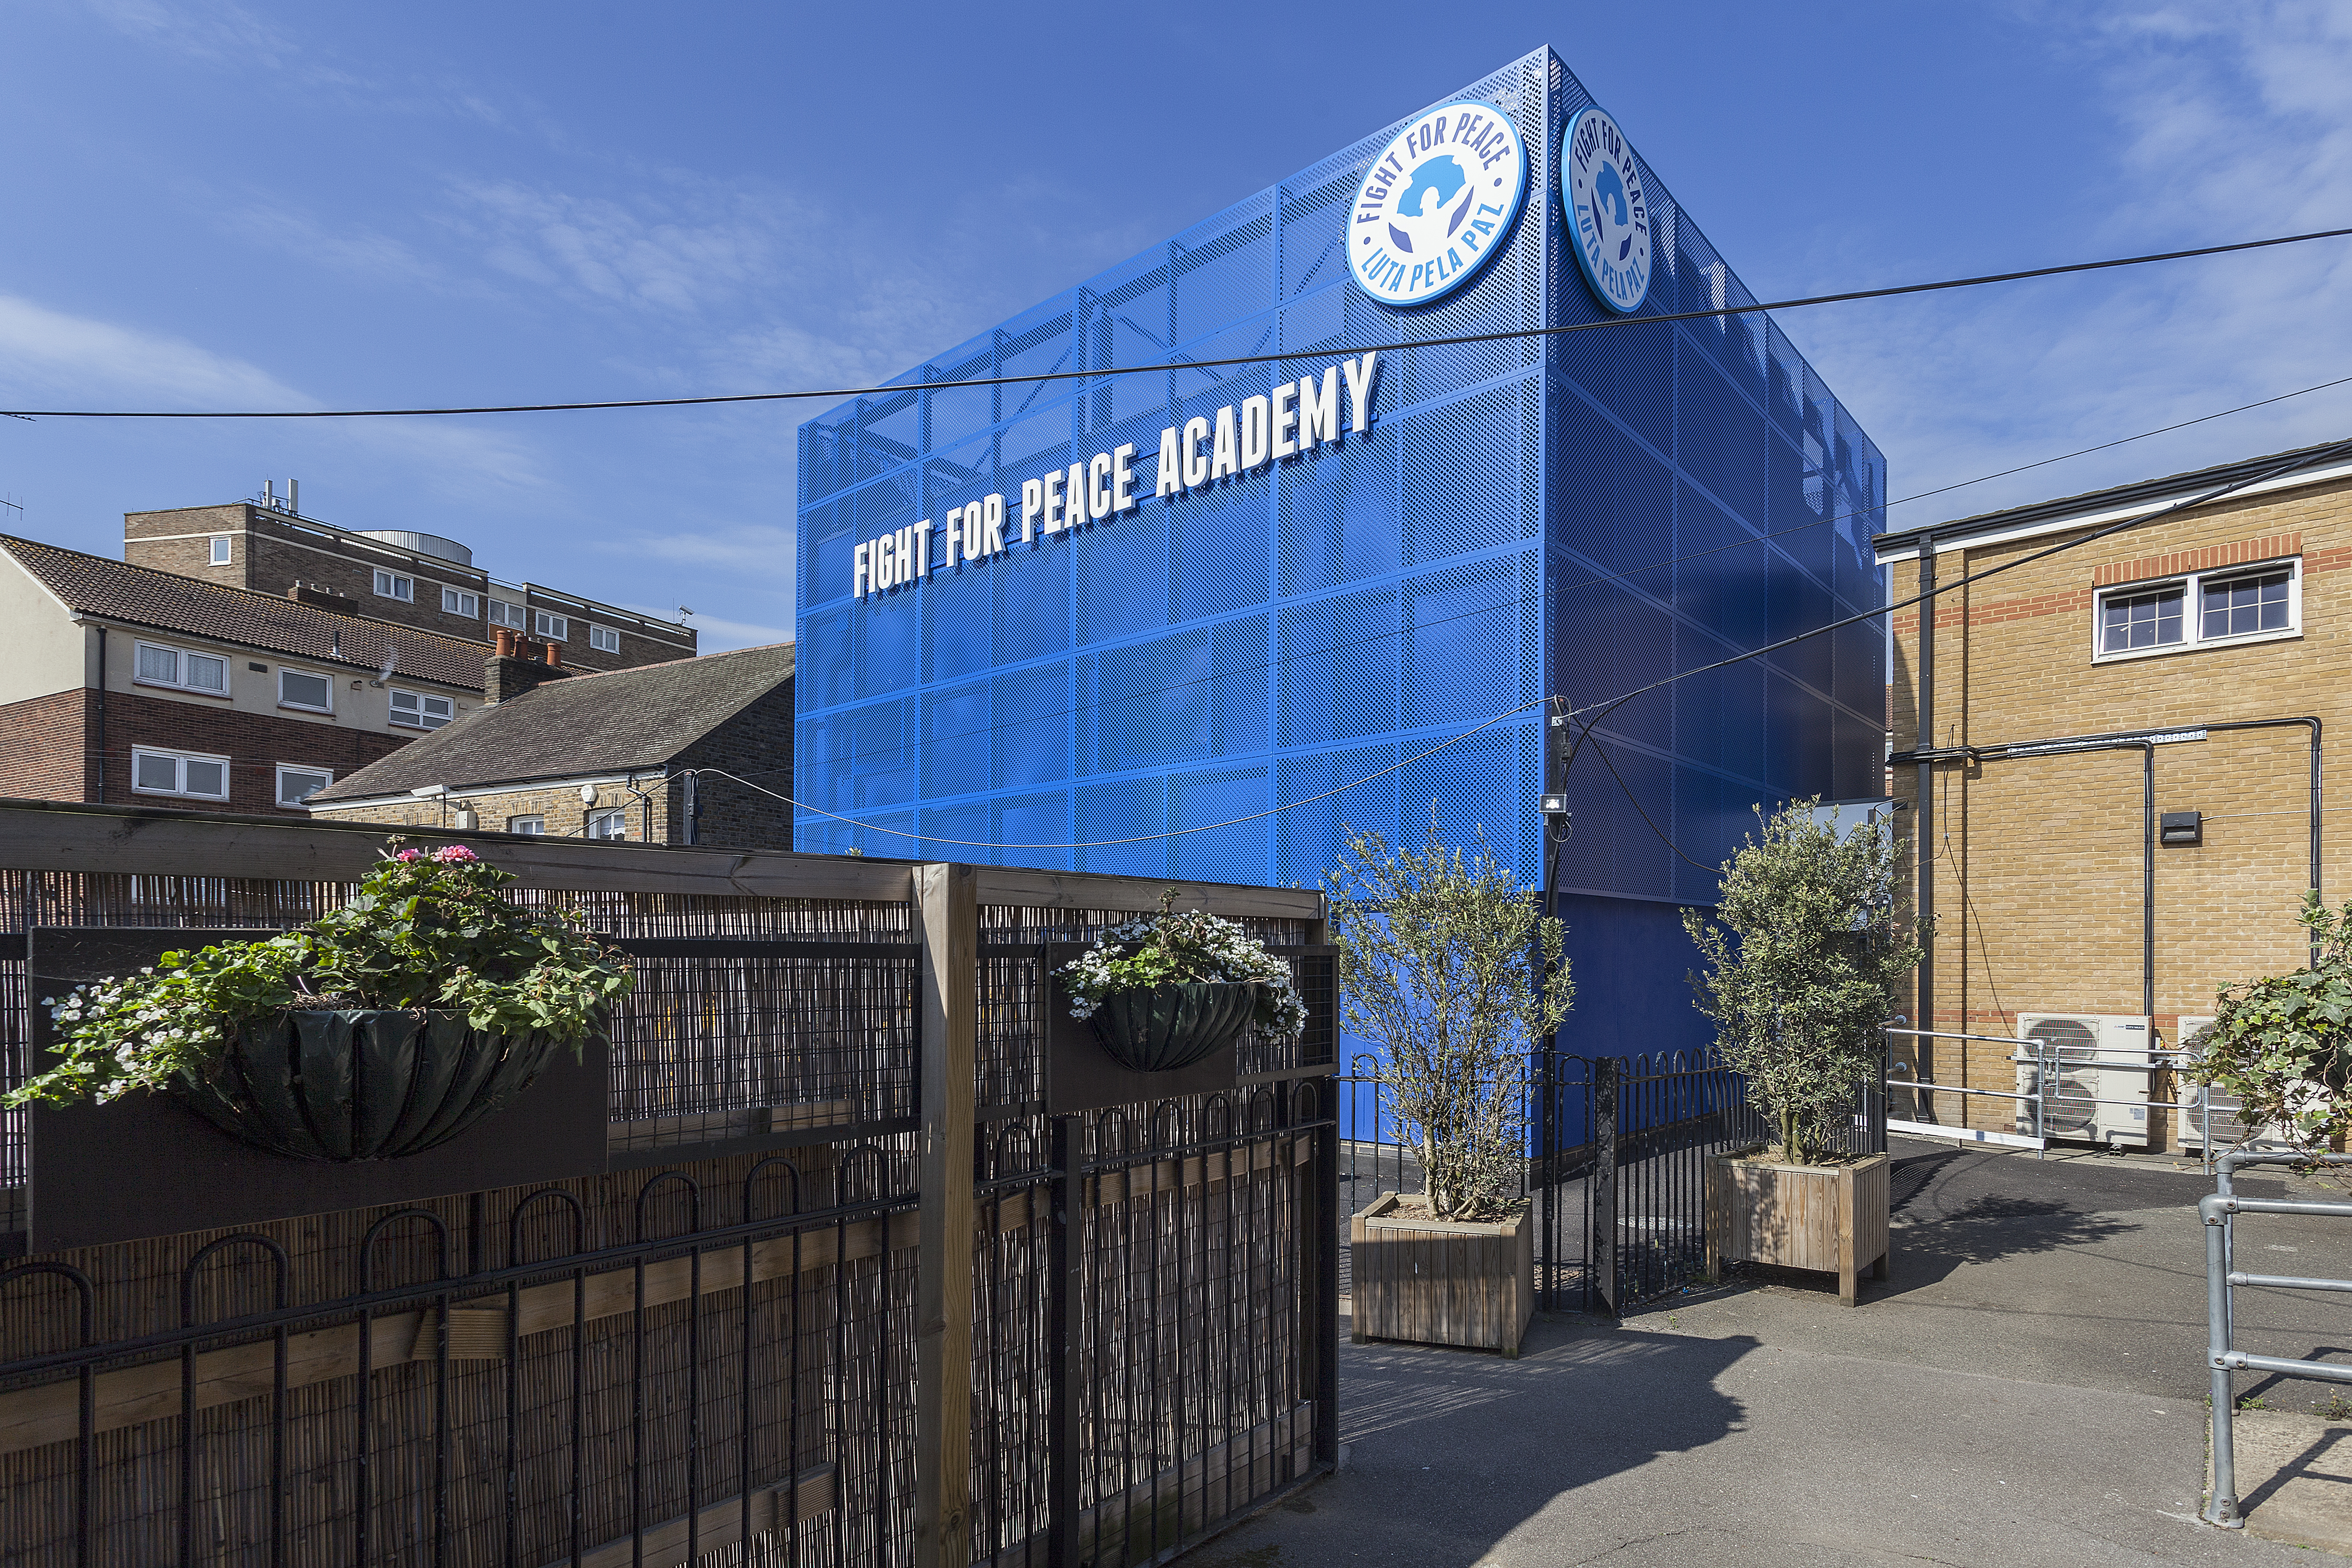 Striking blue building a few storeys high that says Fight for Peace academy on it